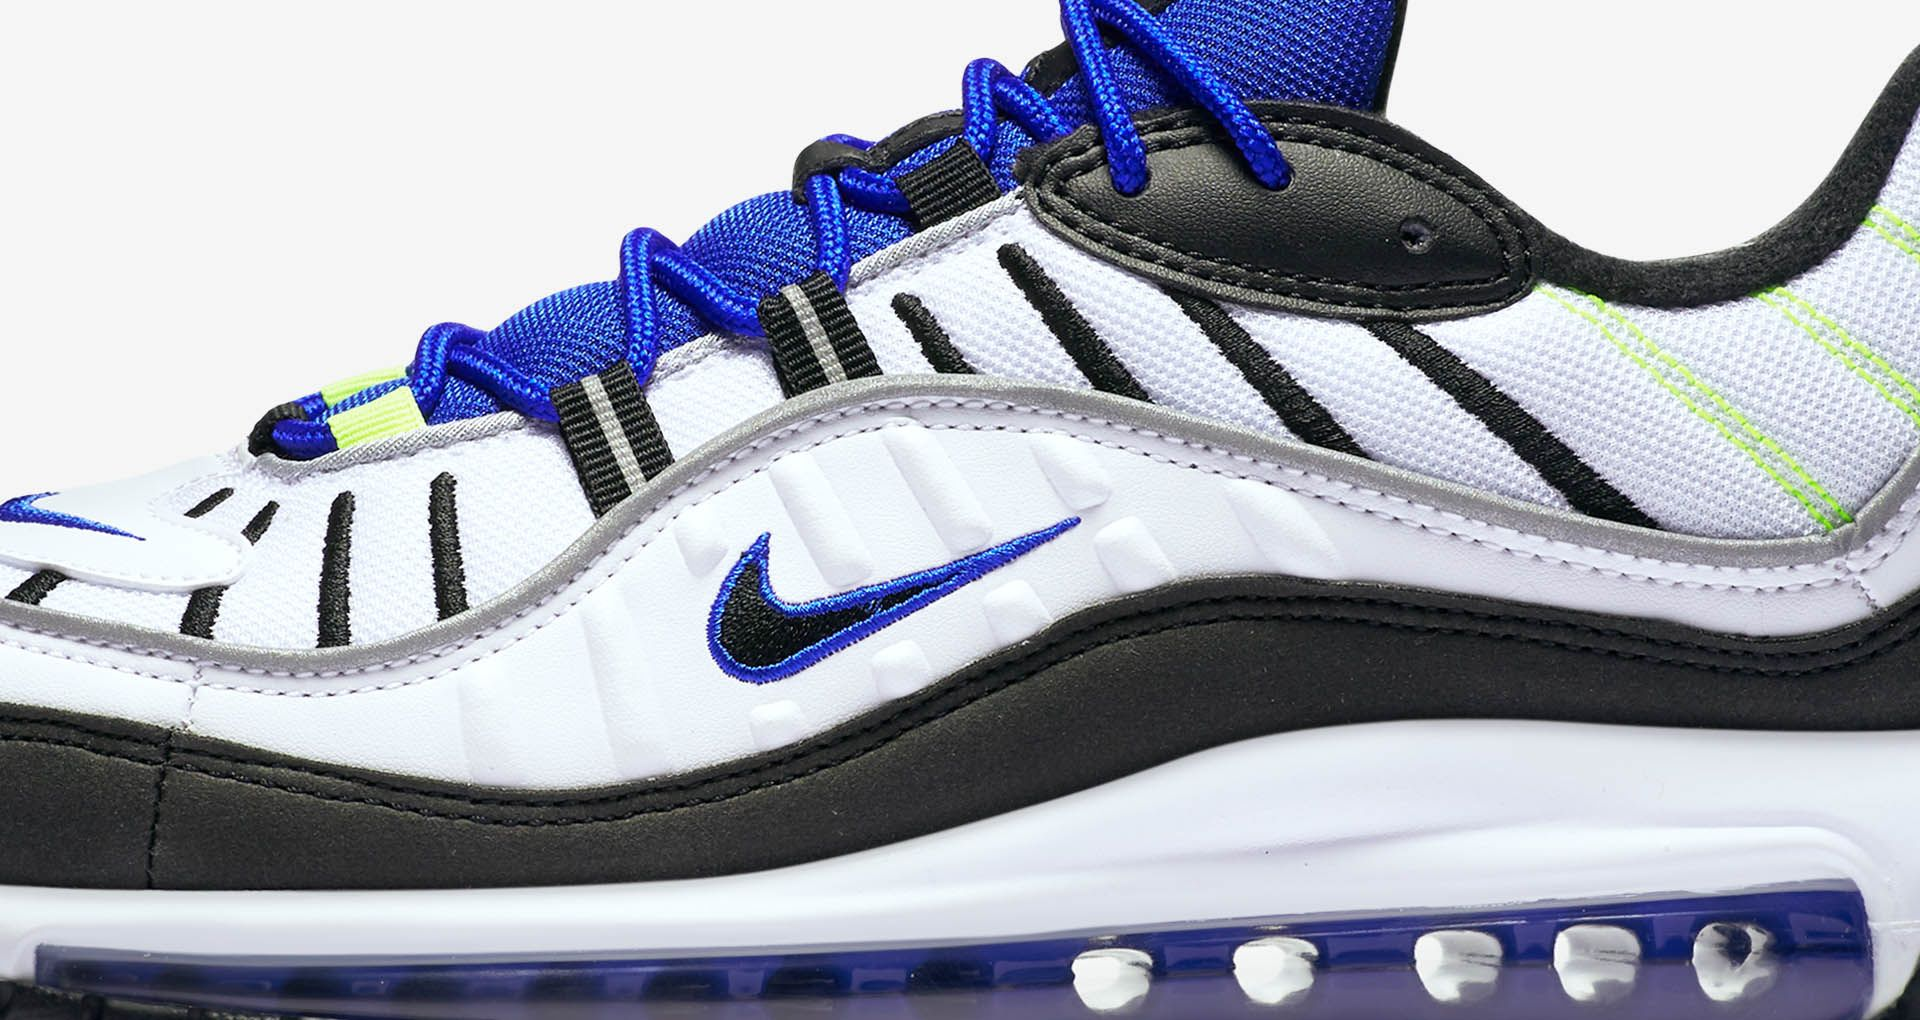 separation shoes cd739 52084 Nike Air Max 98 'White & Black & Racer Blue' Release ...